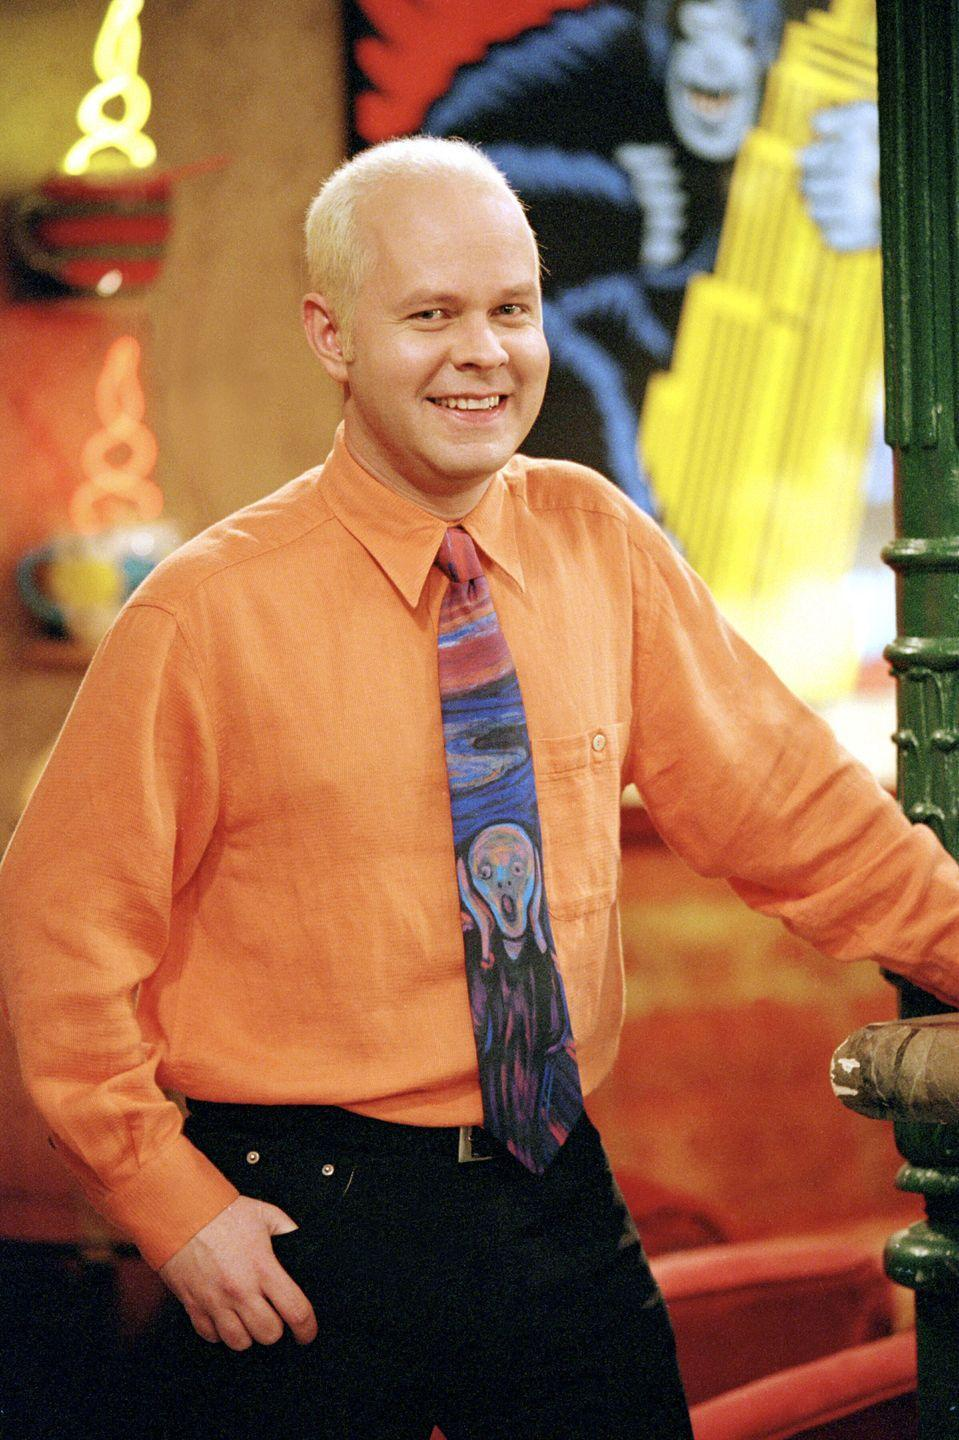 <p>James was a staple at Central Perk after being casted on <em>Friends</em> as the Rachel-obsessed barista, Gunther. </p>